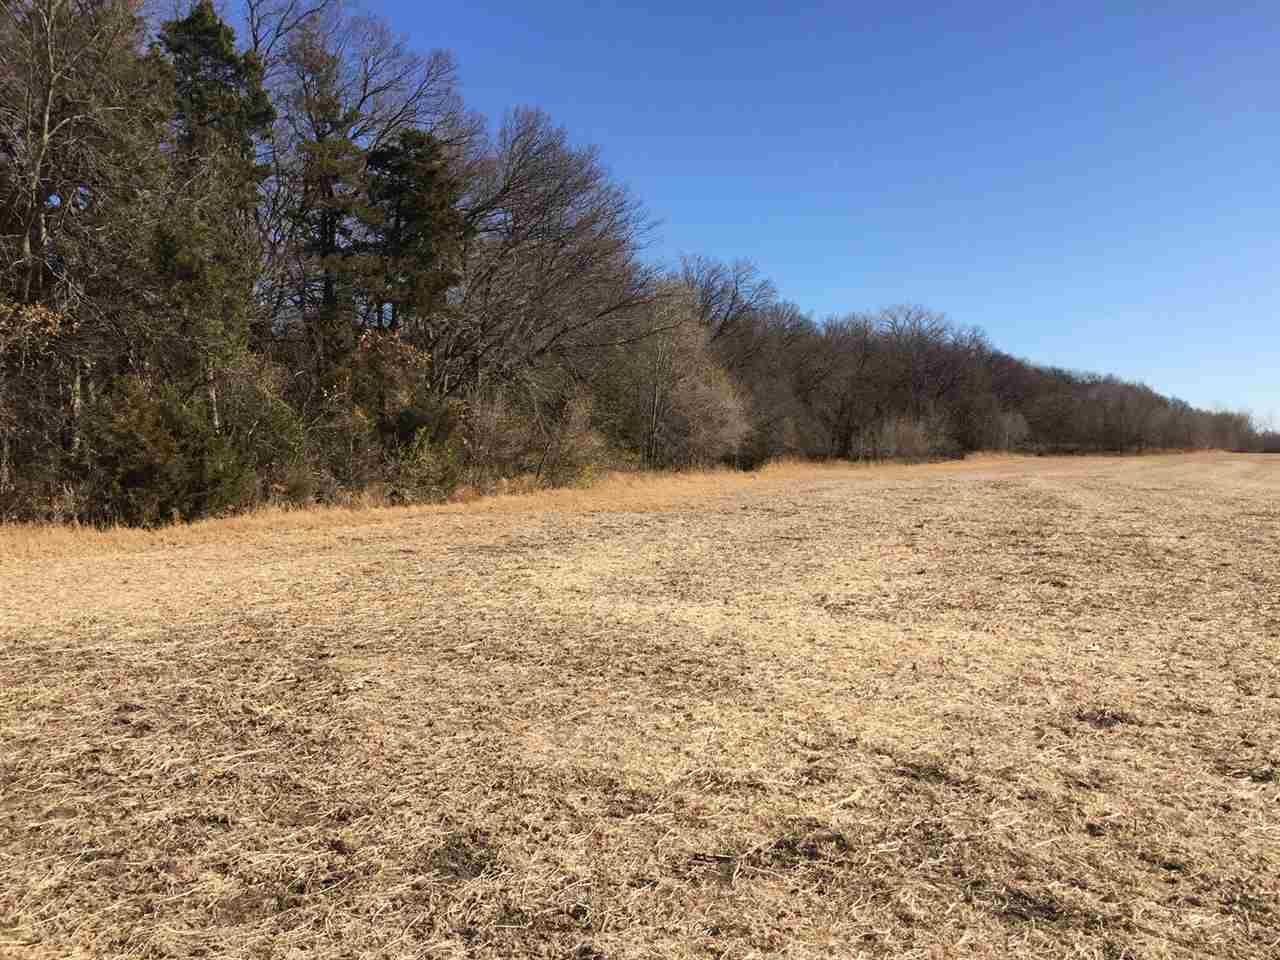 Approximately 1325 feet of Highway frontage along Highway 24 on the North side. With +/-37 acres of crop ground with the balance of the acreage being wooded and terraced area. Access easement at the lower southwest corner of said track.